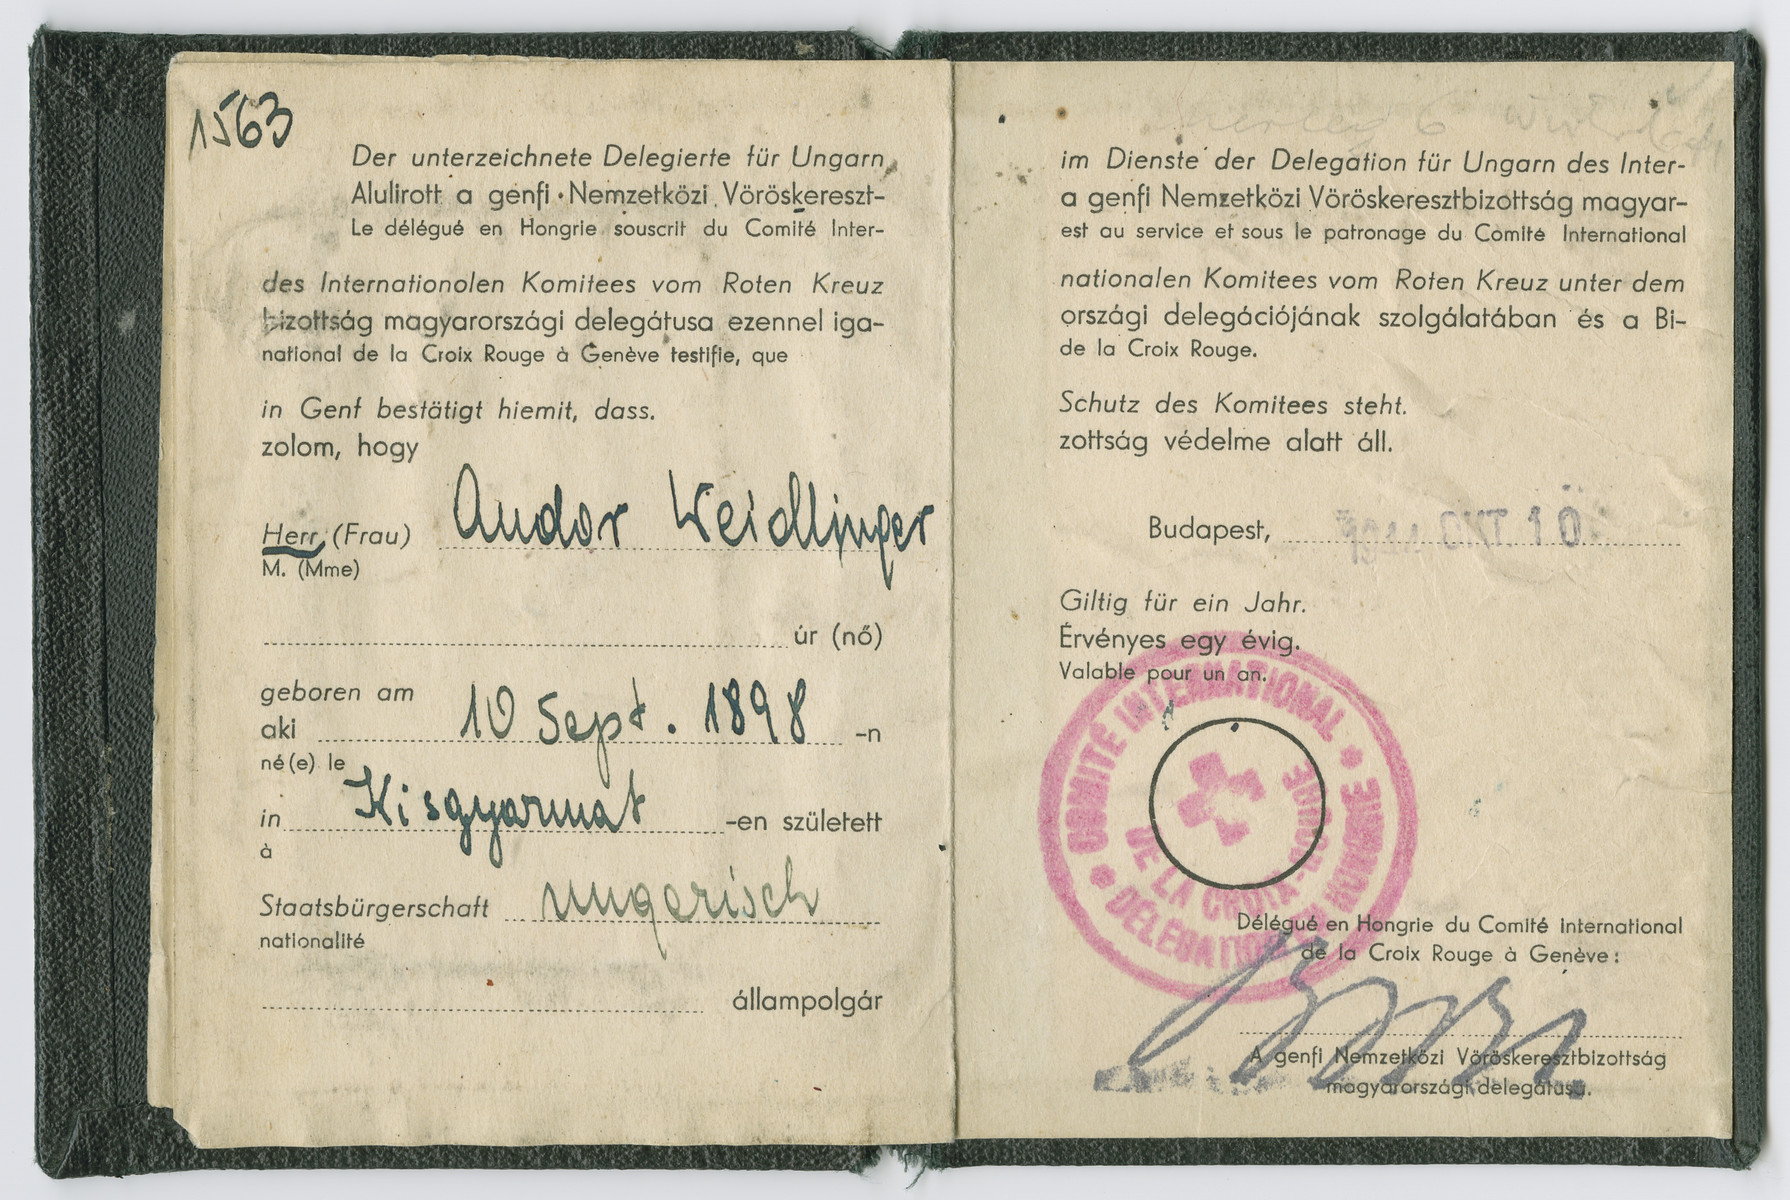 Interior page of an identification card initially issued to Andor Weidlinger by the Swiss Red Cross and then reissued by Soviet authorities.